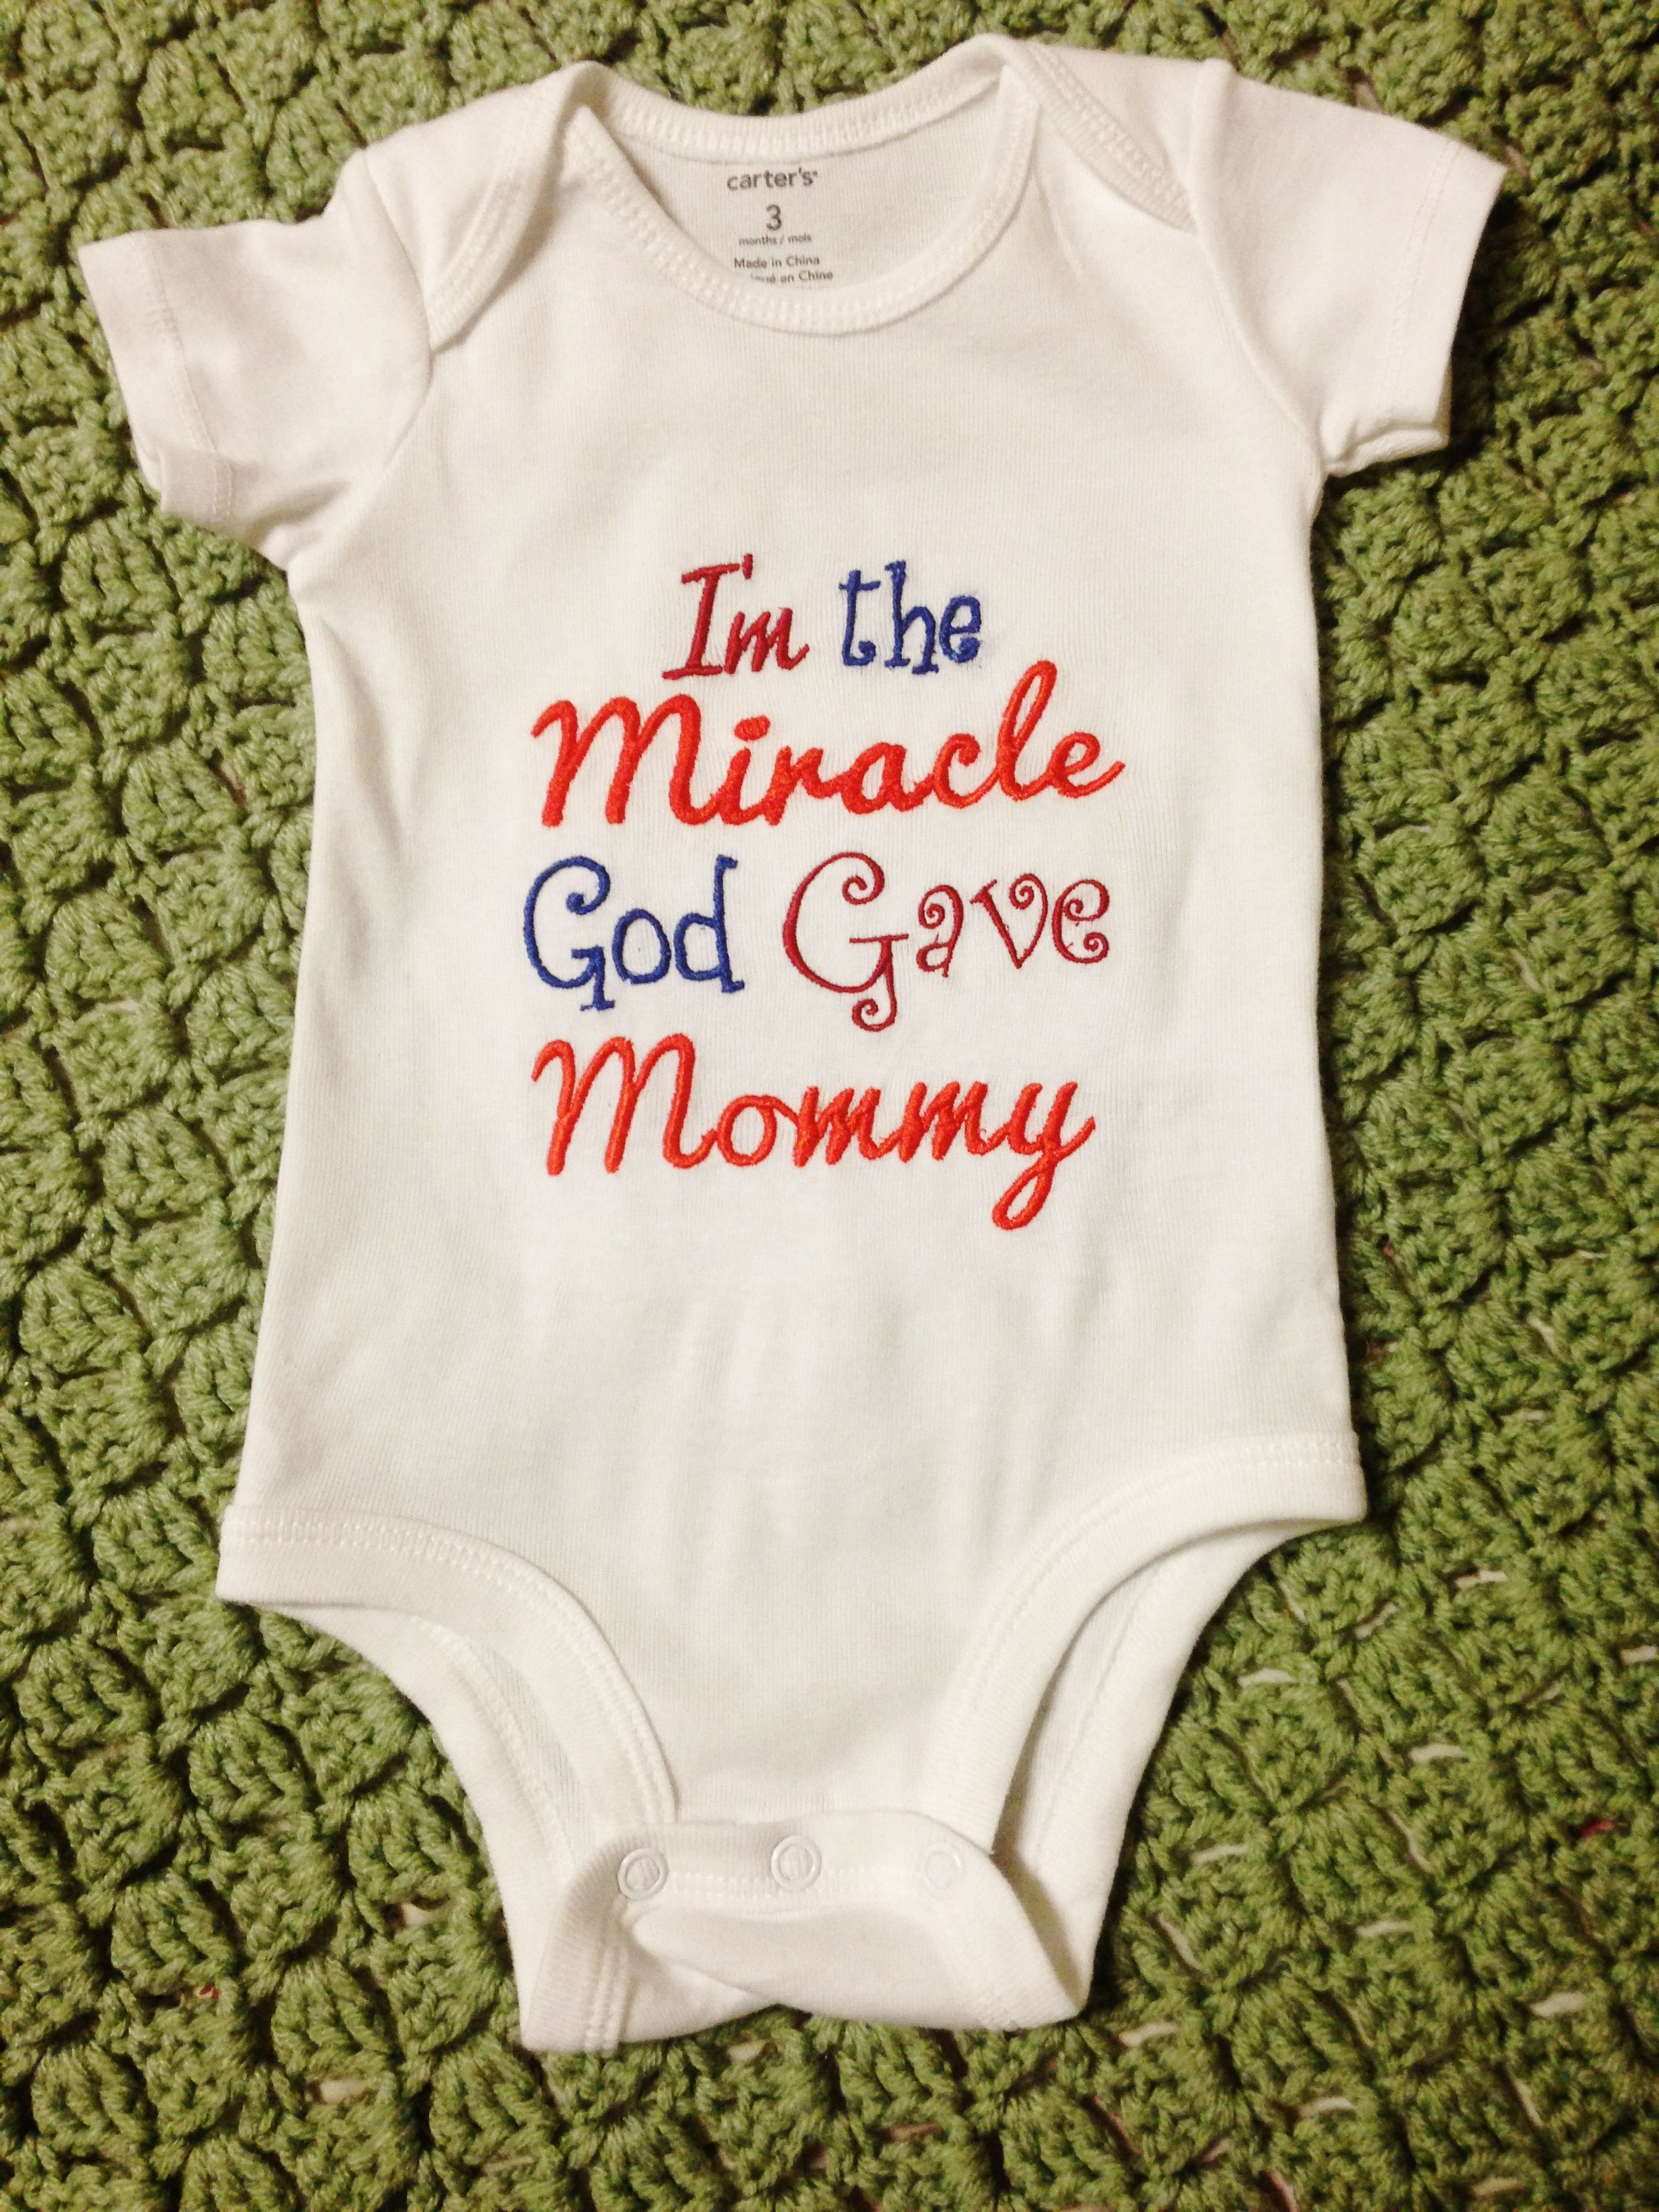 I M The Miracle God Gave Mommy Onesie Or Shirt